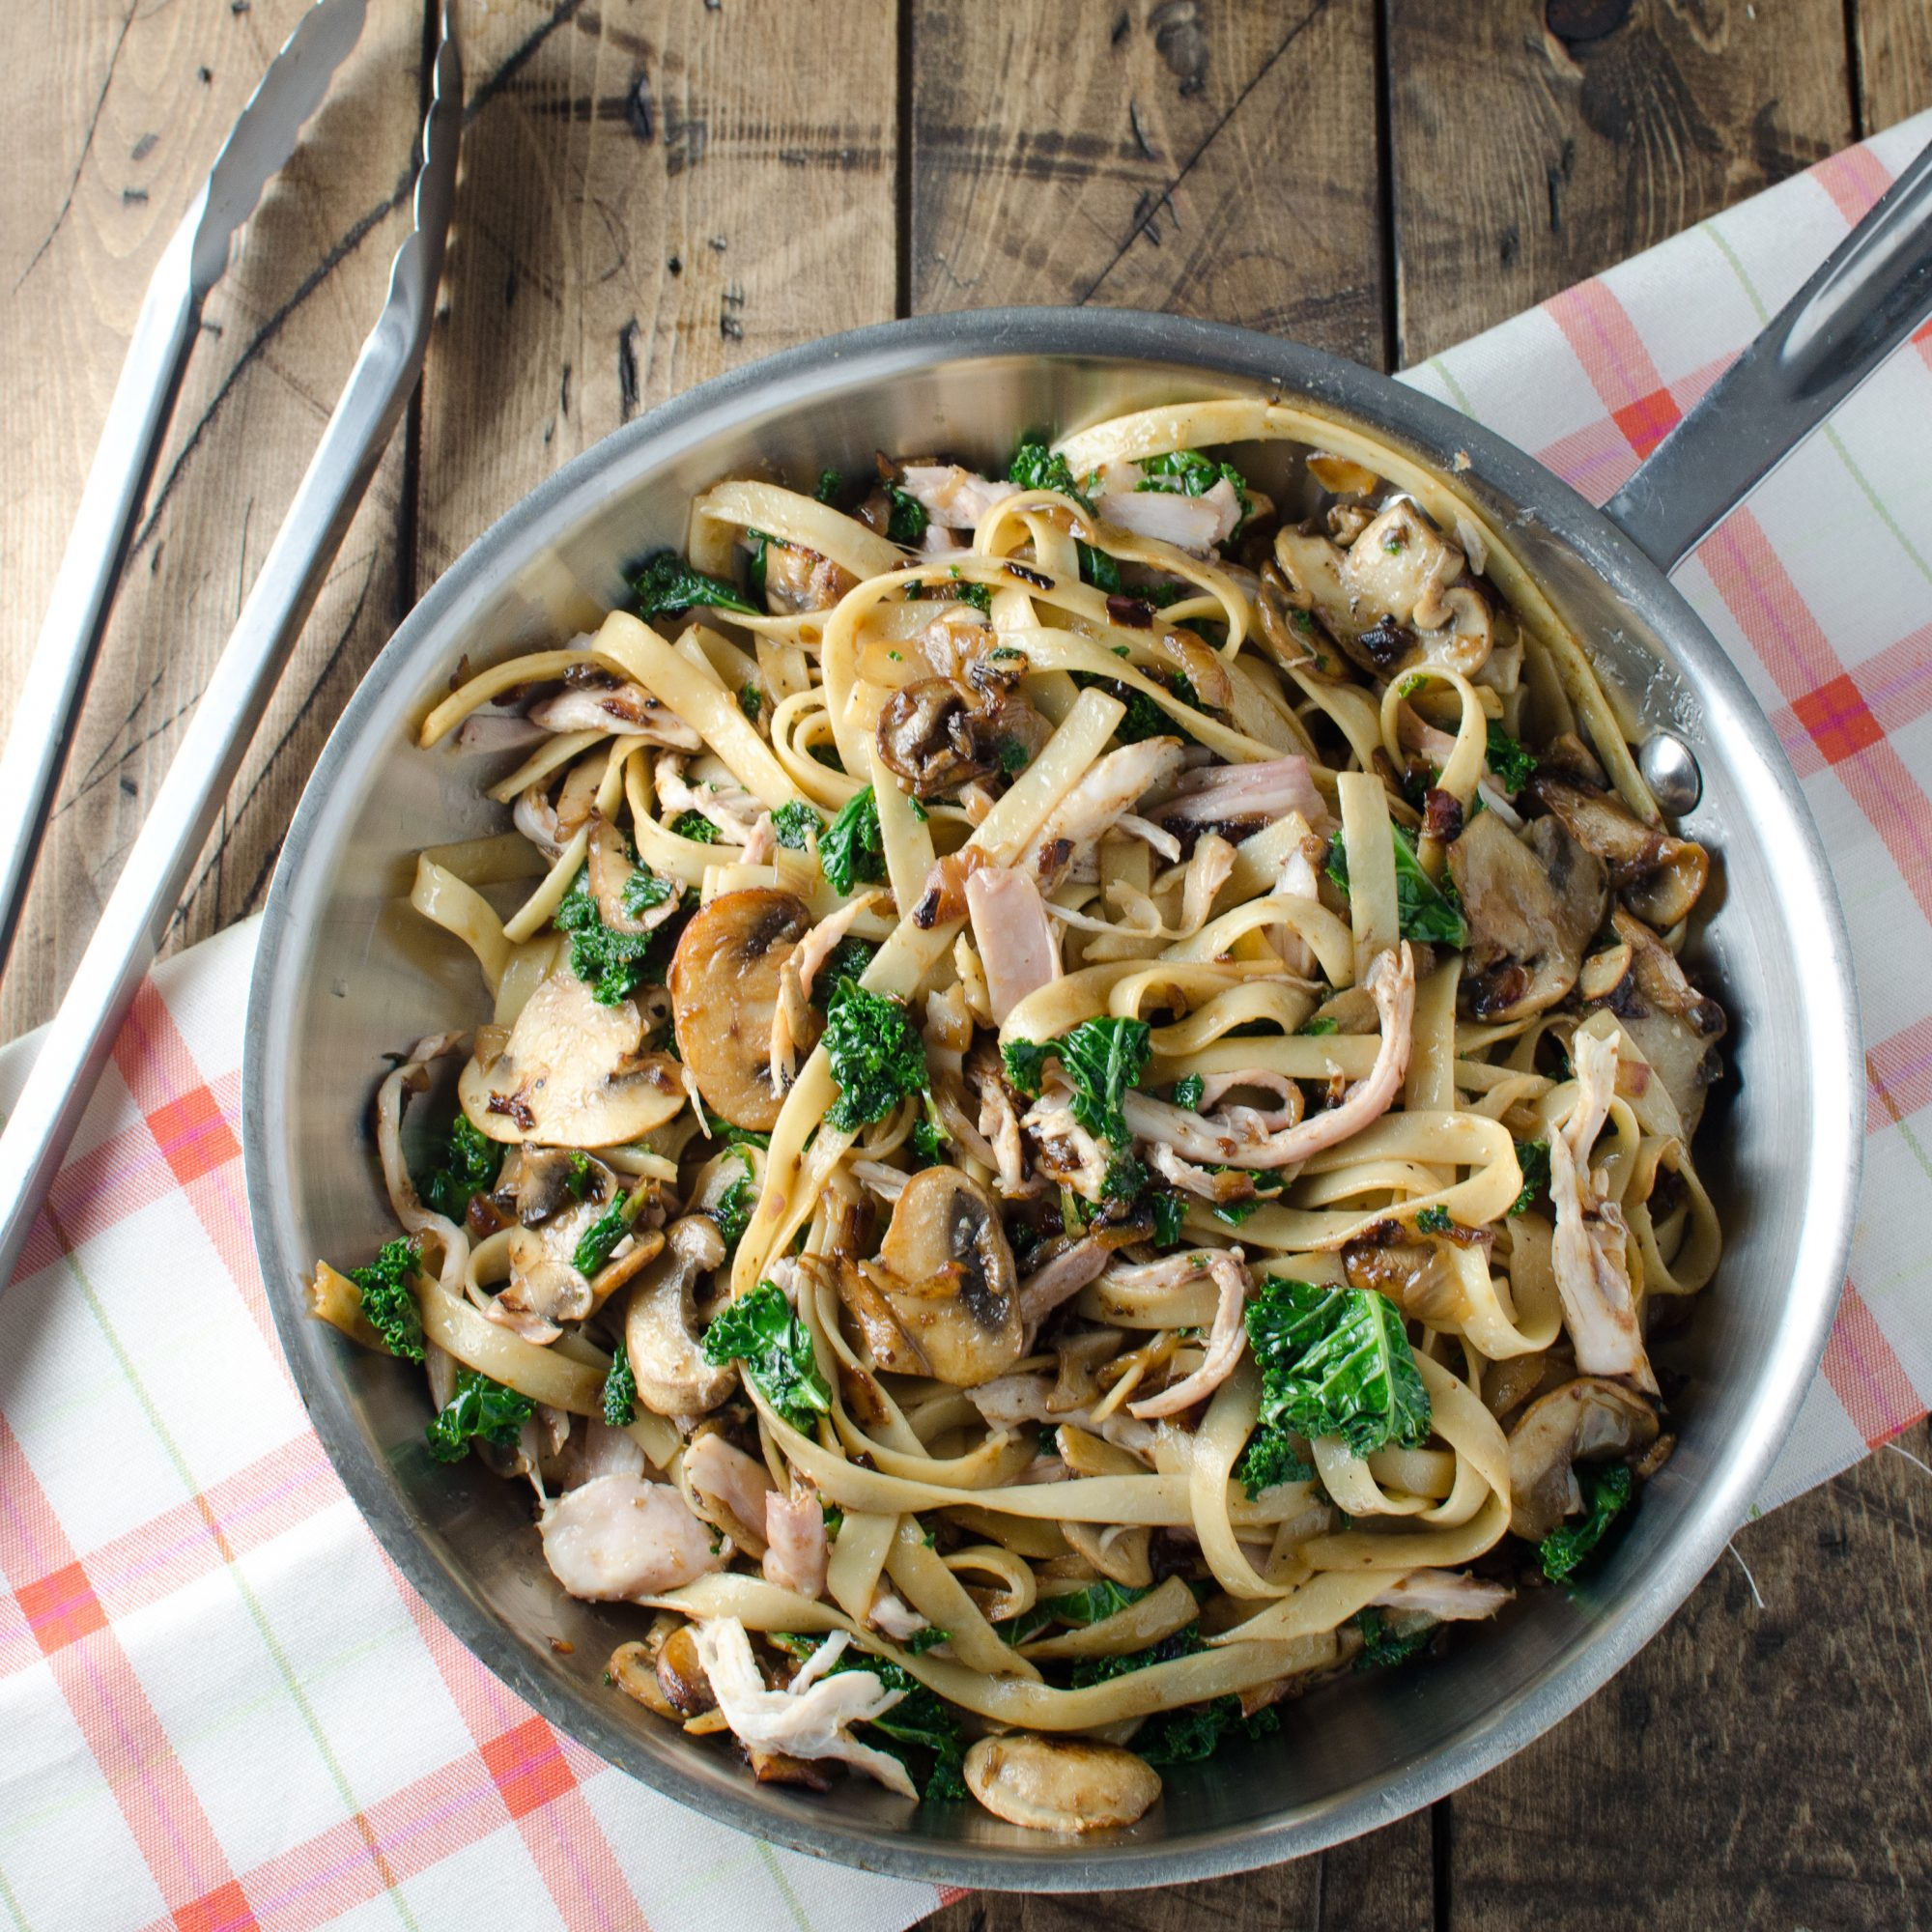 Creamy Chicken Fettuccine with Mushrooms and Kale